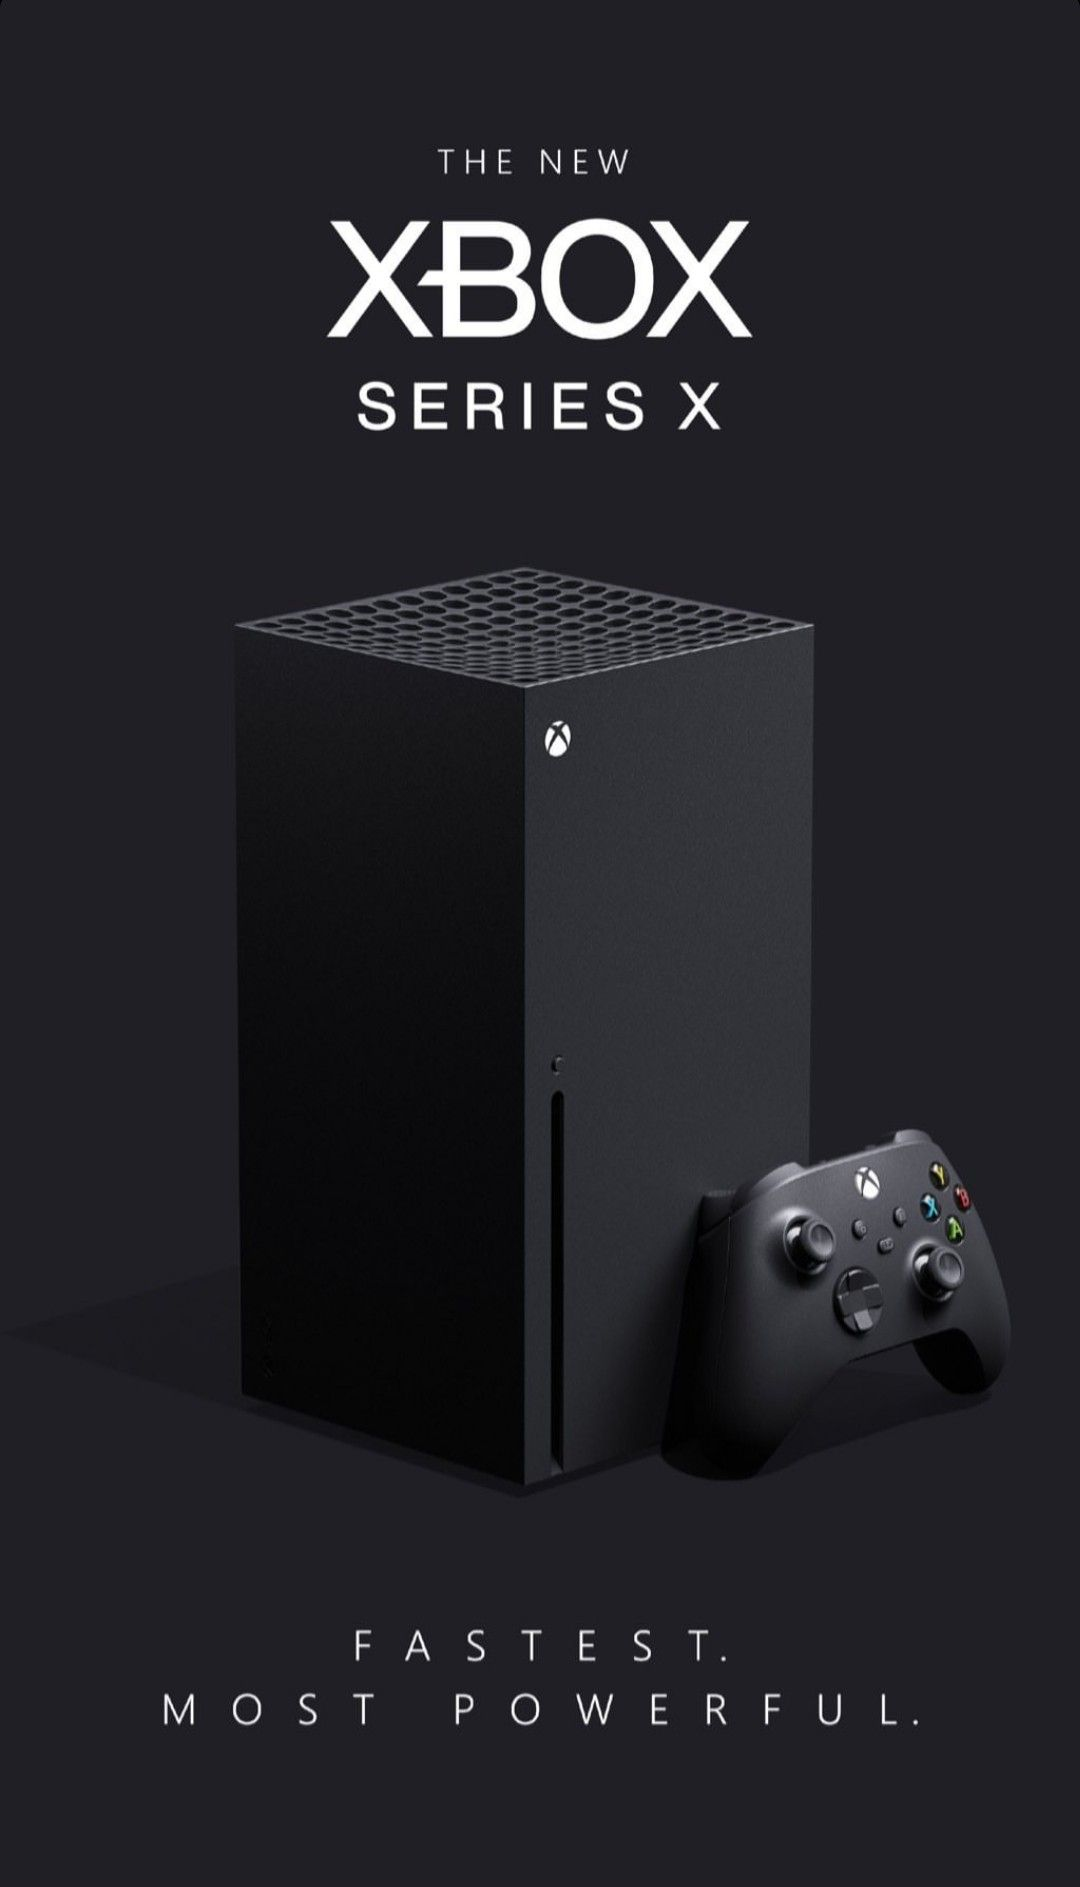 The New Xbox Series X Xbox, Black friday stores